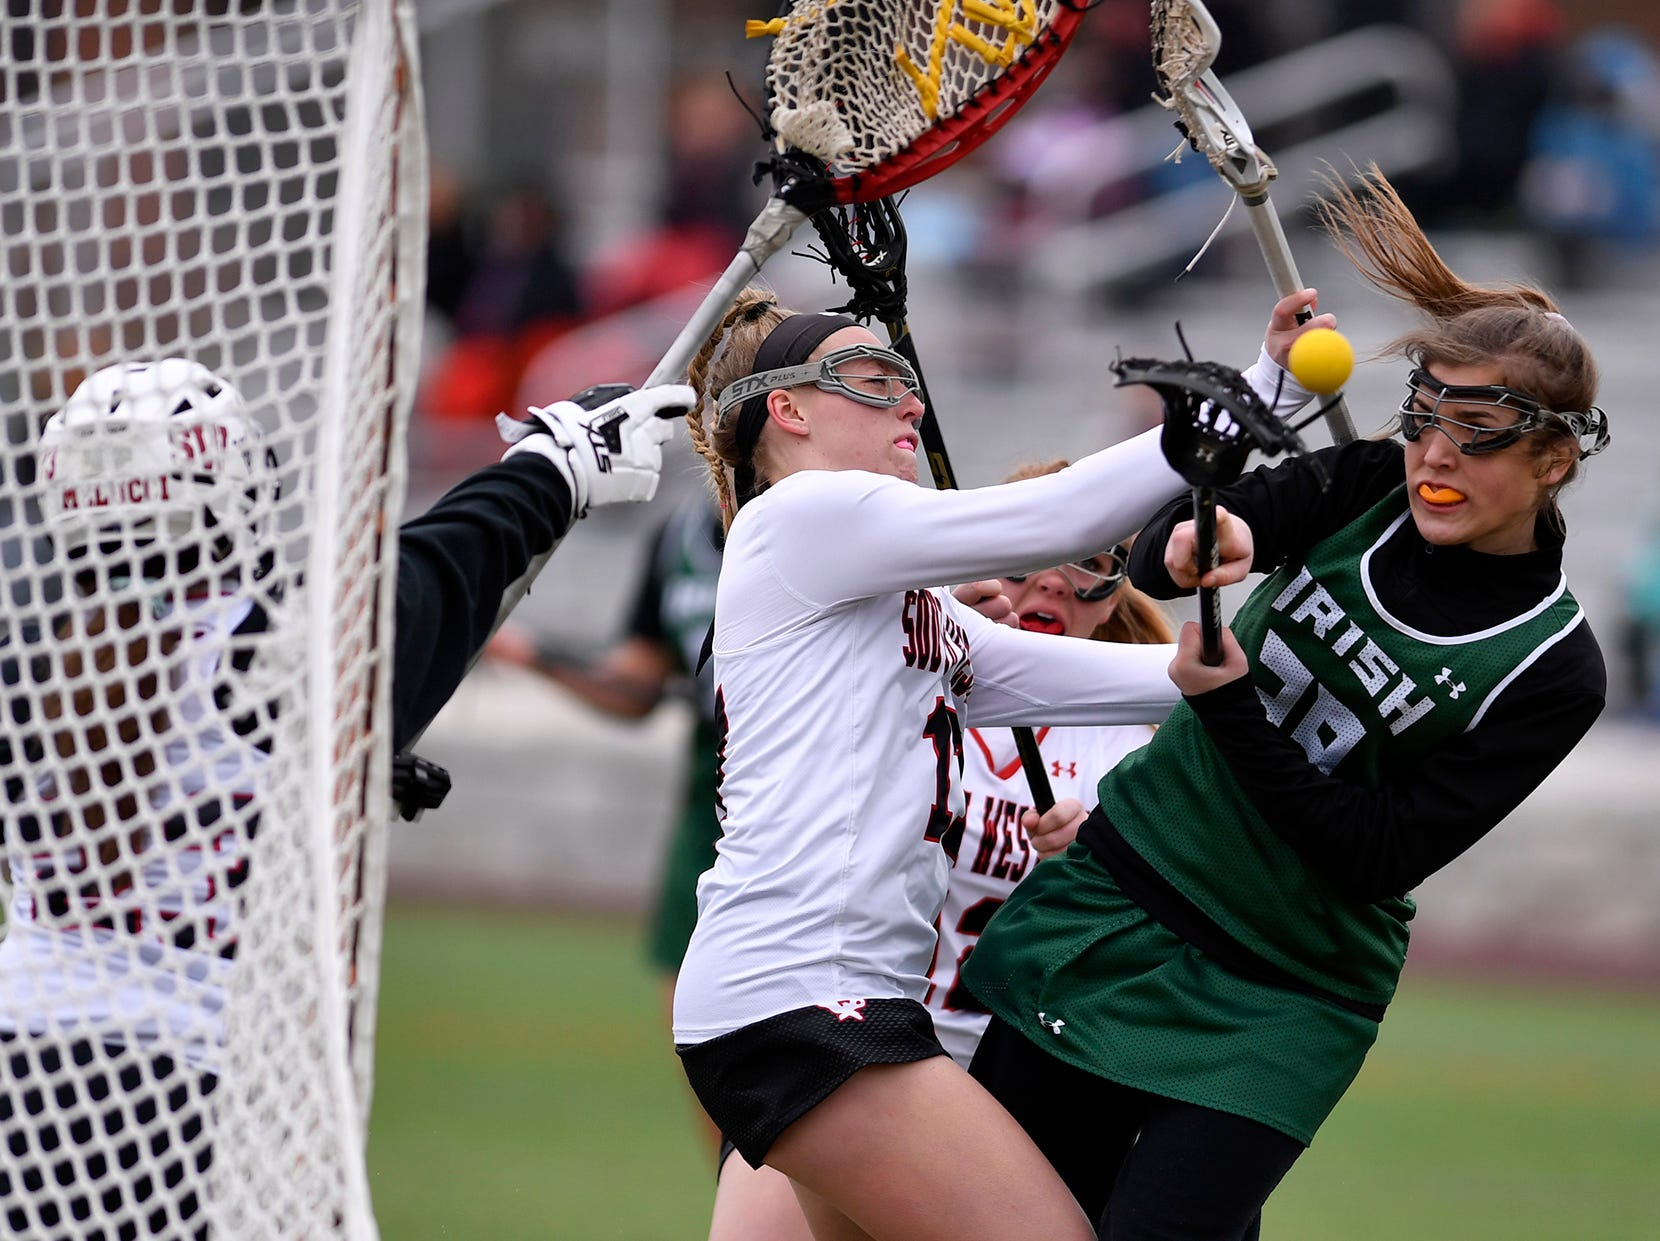 York Catholic's Gracy Gulley is cross checked by Libby Benzing of South Western, Tuesday, April 2, 2019.John A. Pavoncello photo